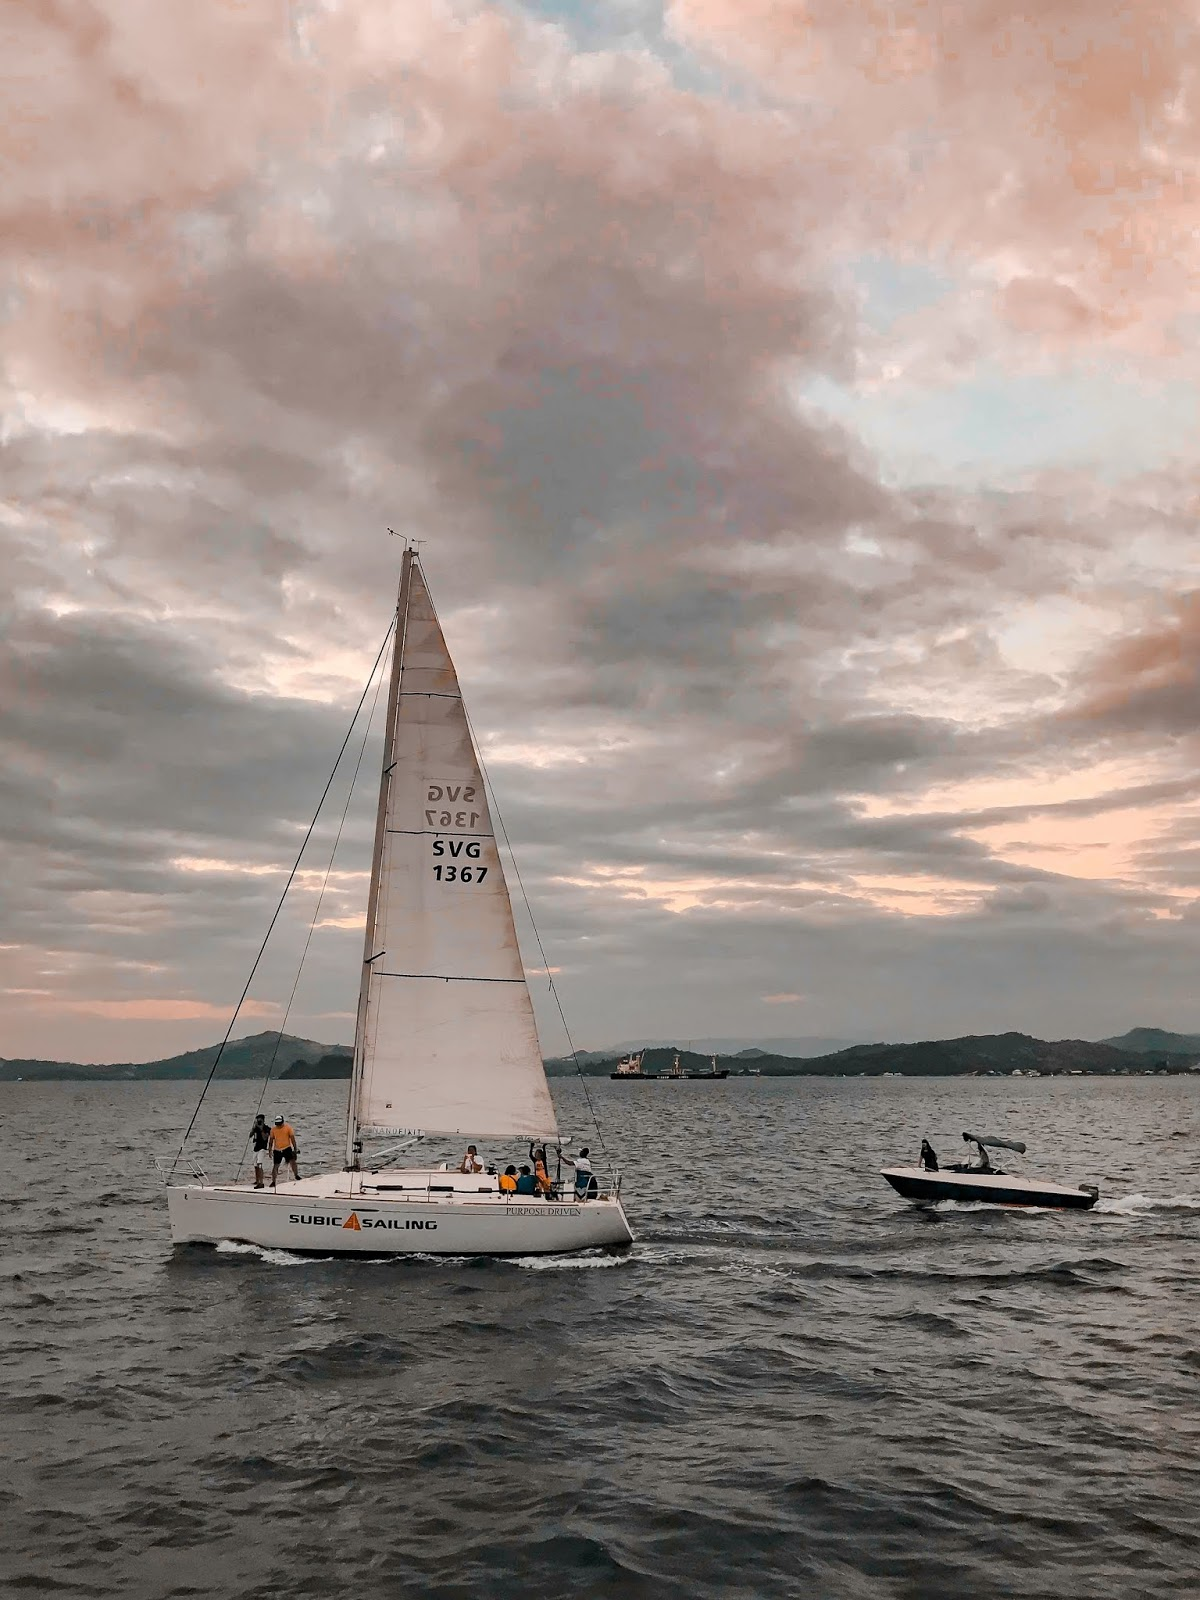 Sunset sailing at Subic Bay Freeport